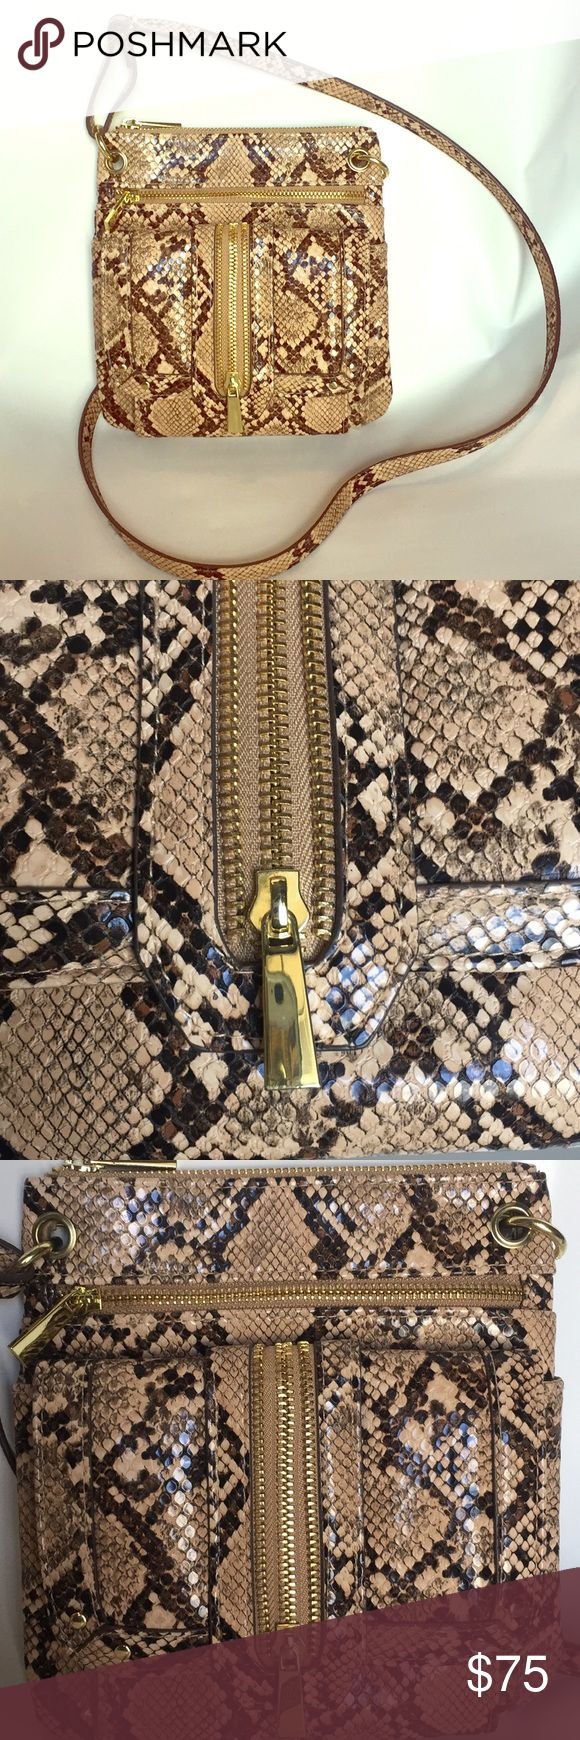 Python print cross body bag with gold hardware Python print cross body bag with beautiful gold hardware and accents.  One zipper pocket on back.  One zipper pocket inside.  One main zipper on top.  Two zipper pockets on front.  Two pockets under magnetic folding flap. New without tags.  Never used so there is no wear and there are no flaws. Bags Crossbody Bags